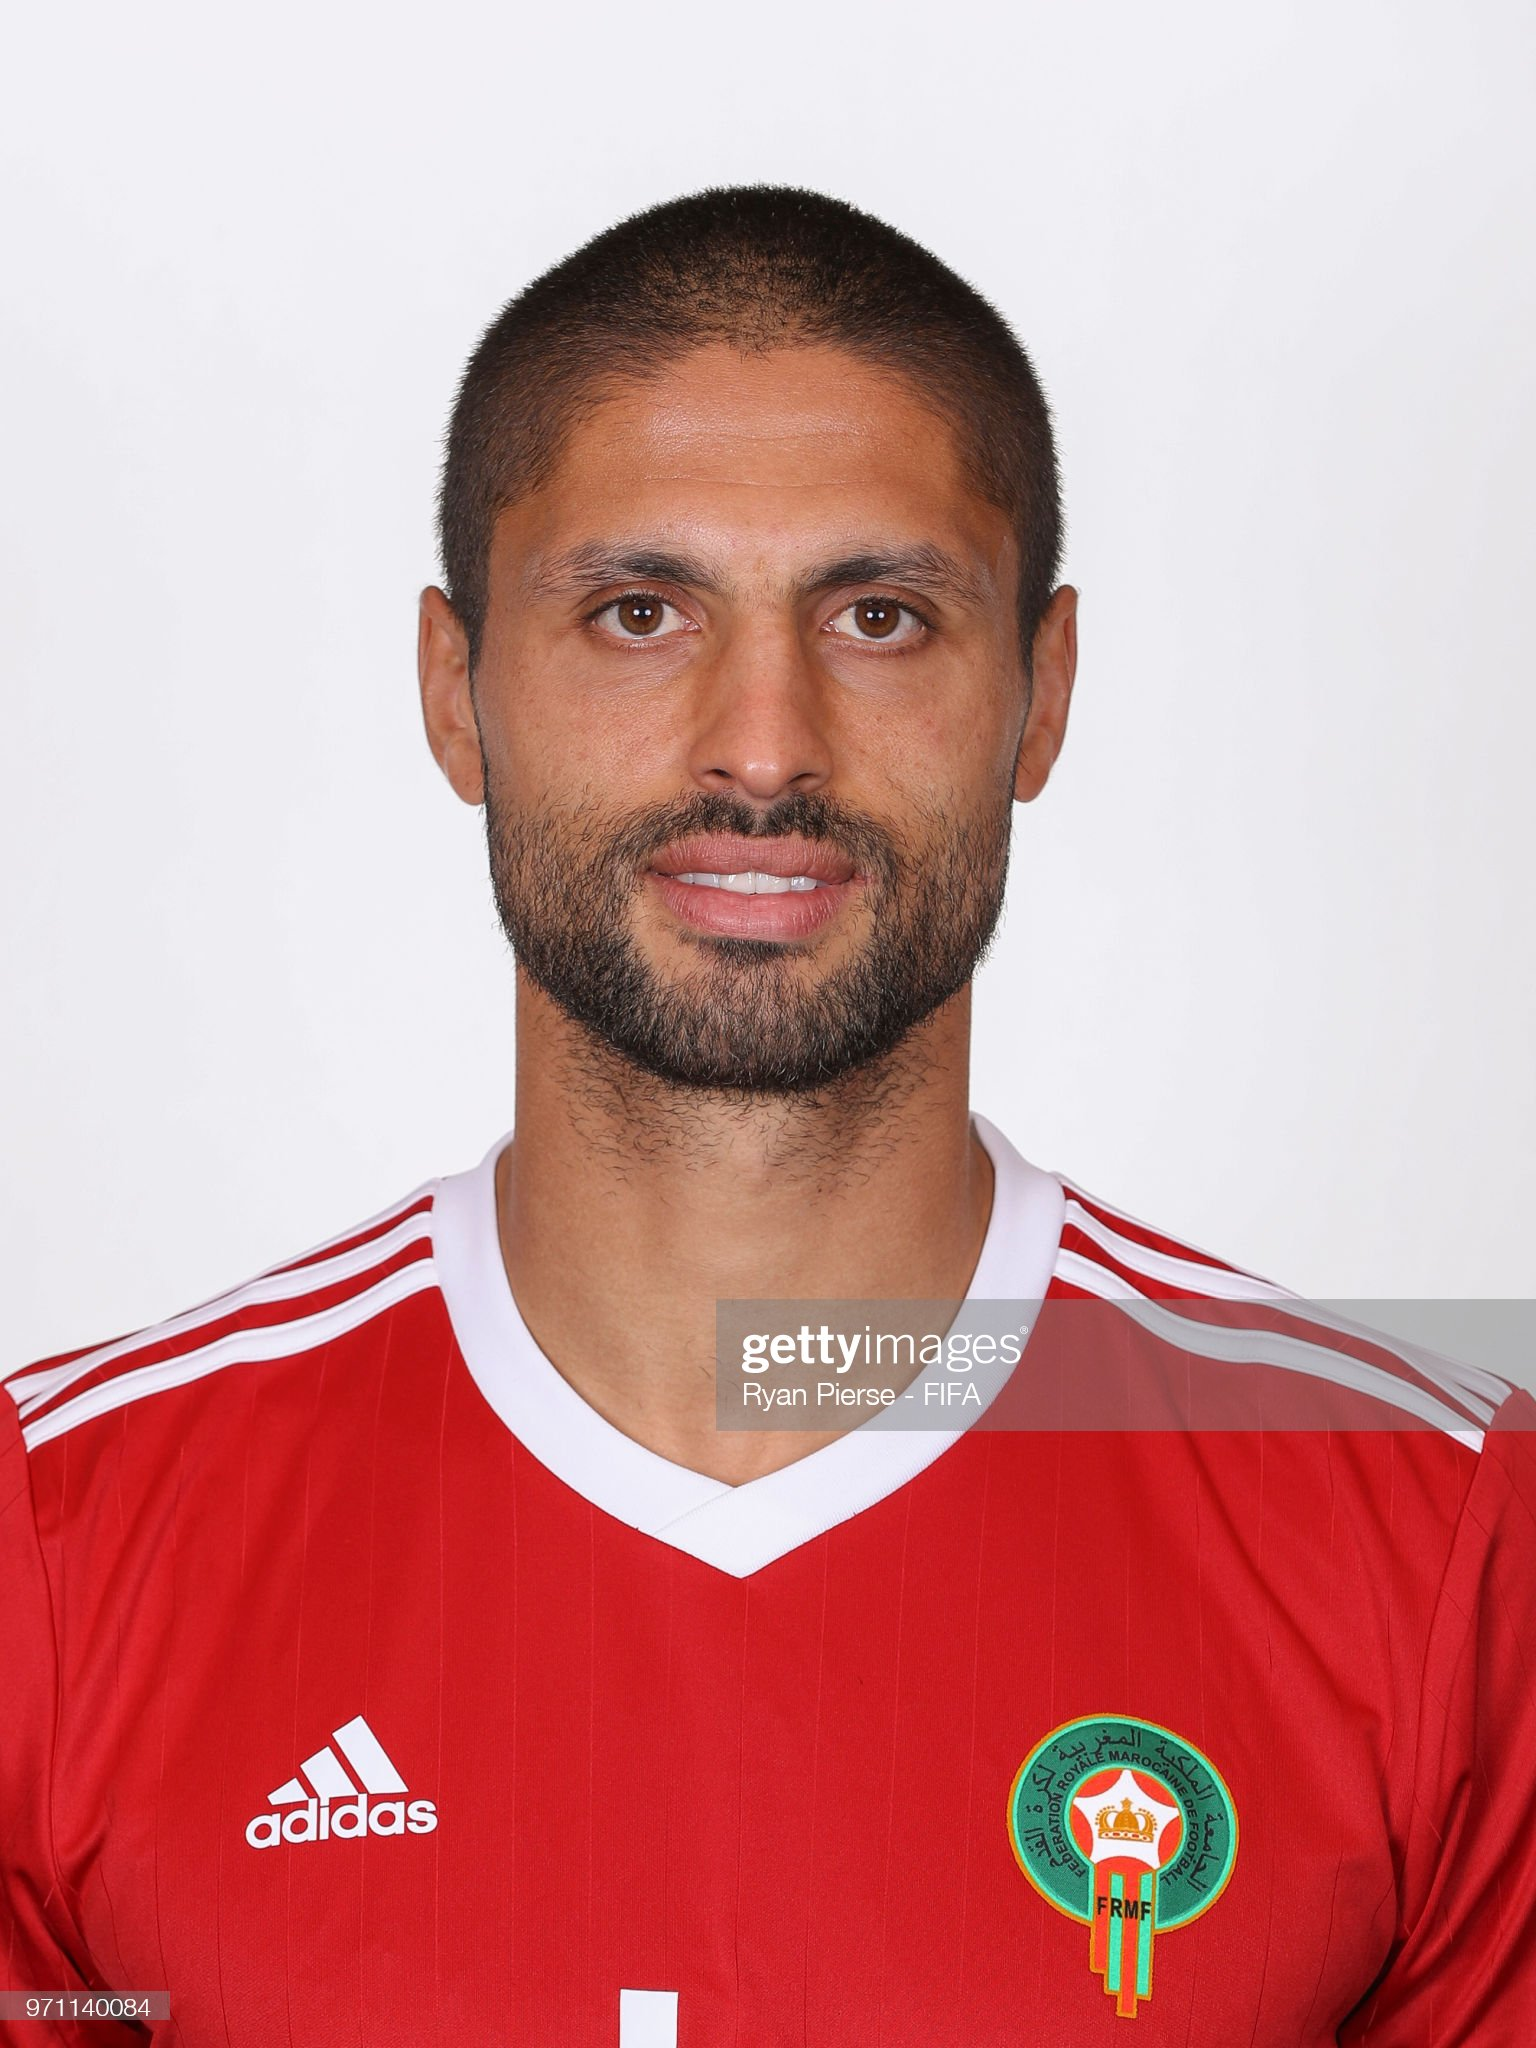 Norteafricanos Manuel-da-costa-of-morocco-poses-during-the-official-fifa-world-cup-picture-id971140084?s=2048x2048